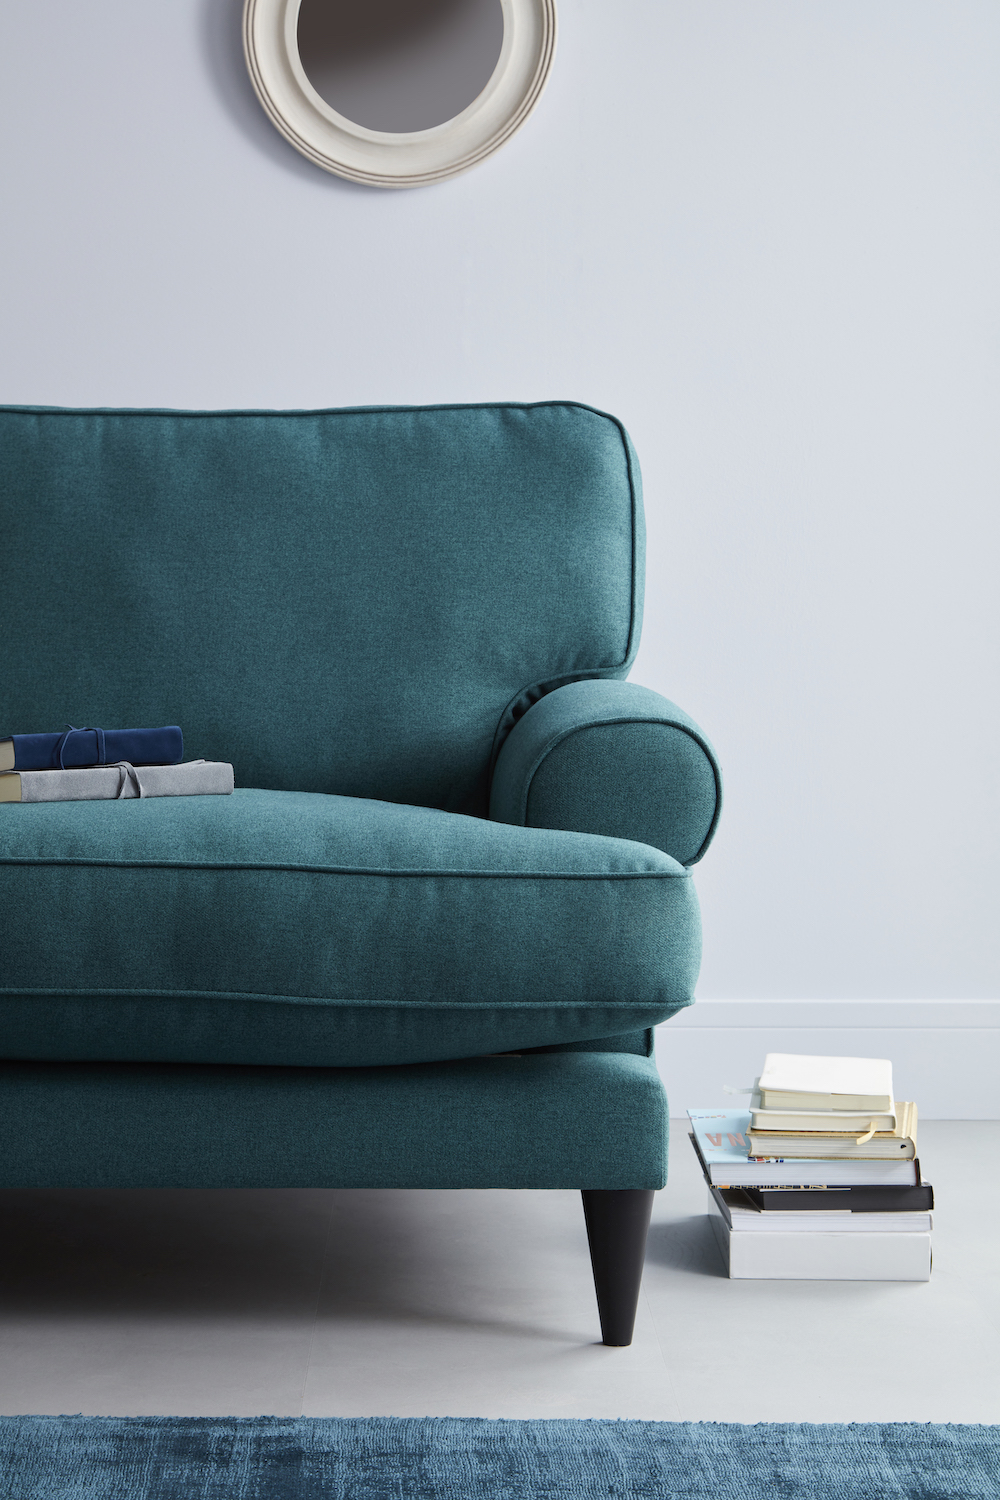 Right side view of the viv sofa in a teal fabric pictured next to a pile of books